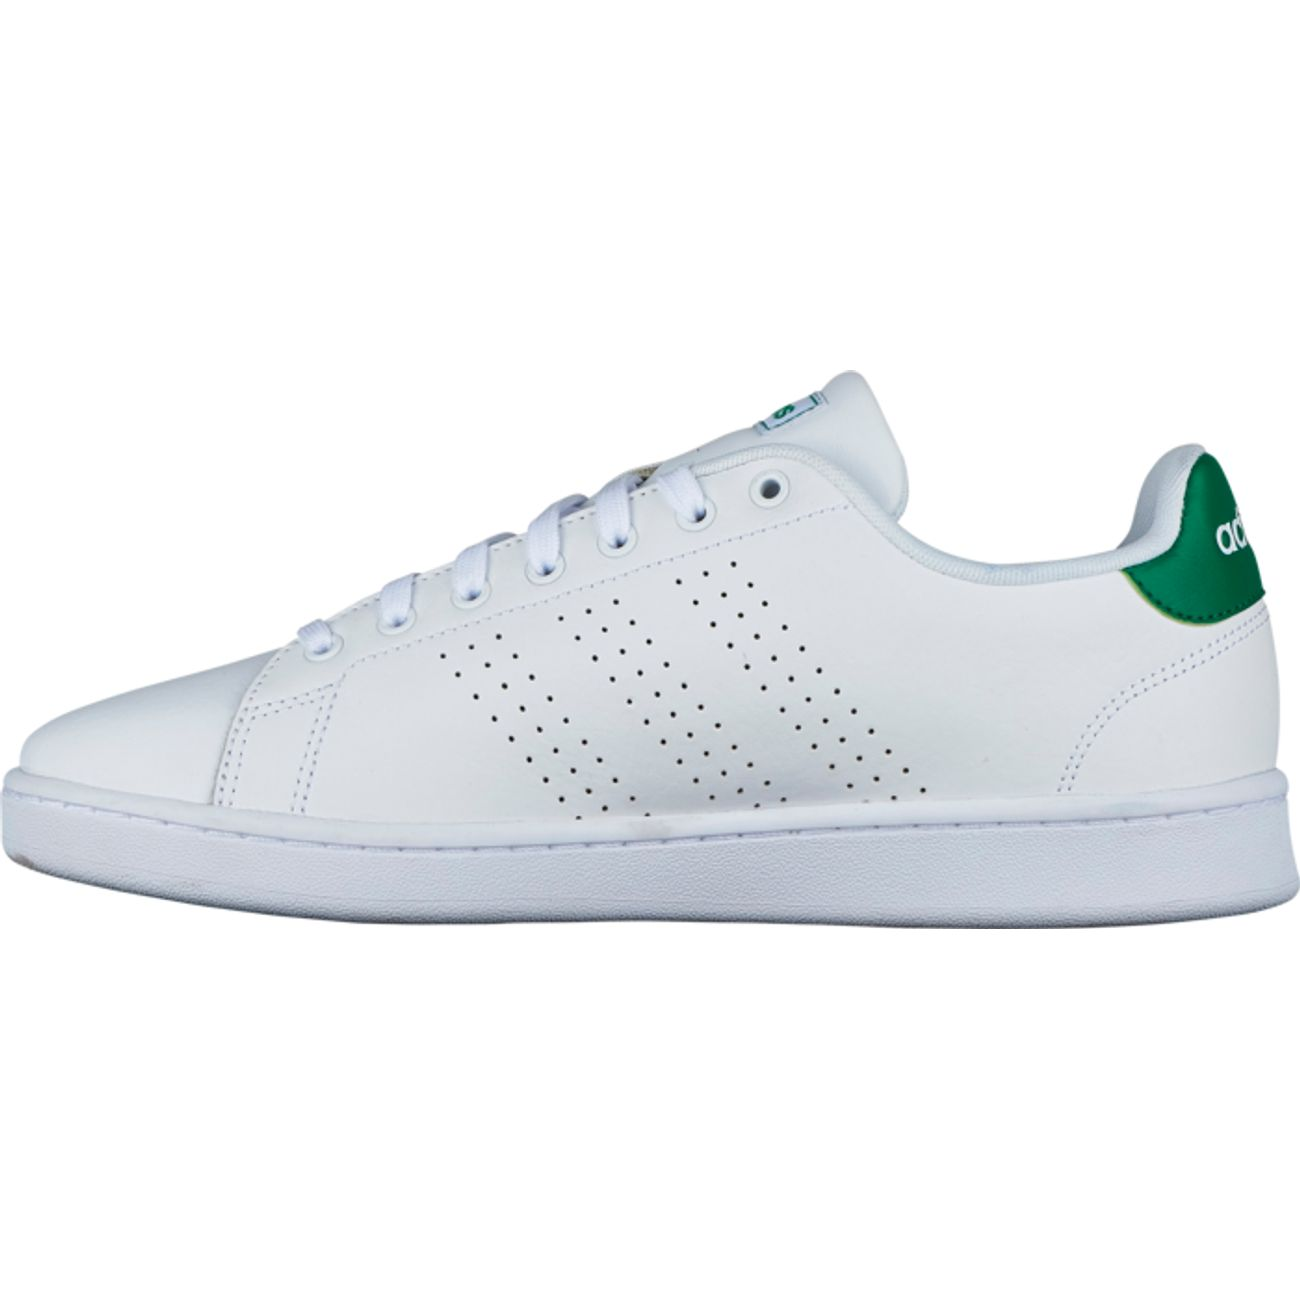 Loisirs Adidas Basses Advantage Chaussures Homme I7vYgfb6y